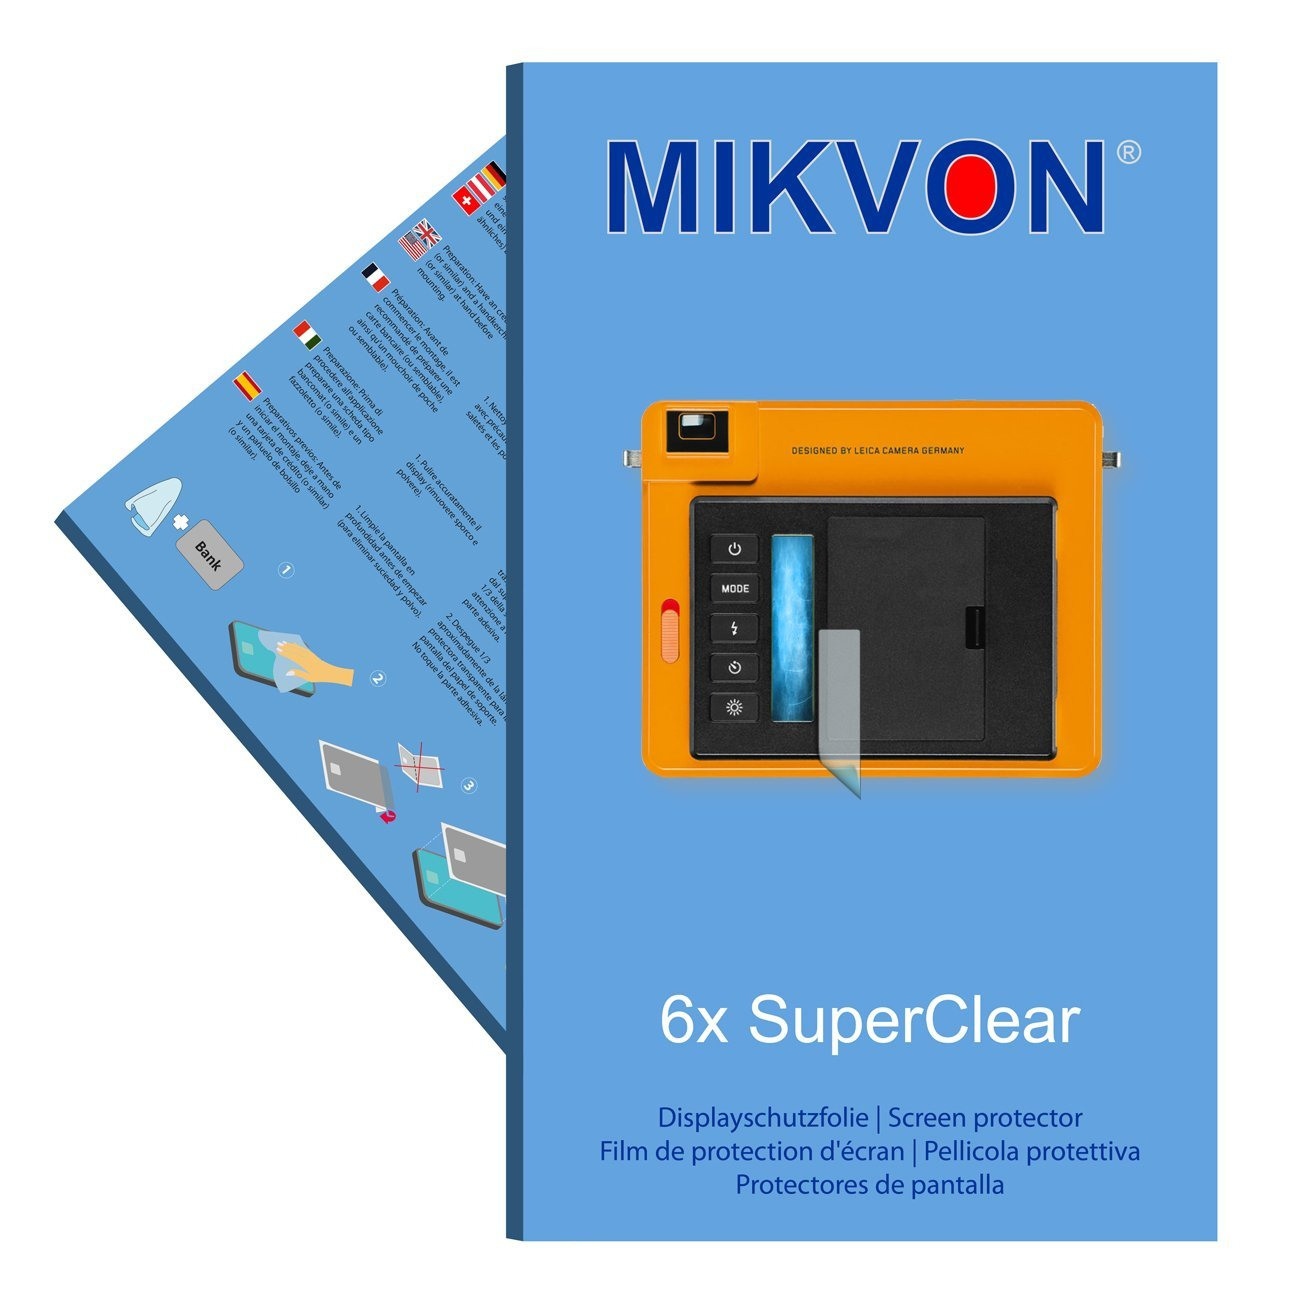 6x Mikvon films screen protector SuperClear for Leica Sofort - transparent - Made in Germany